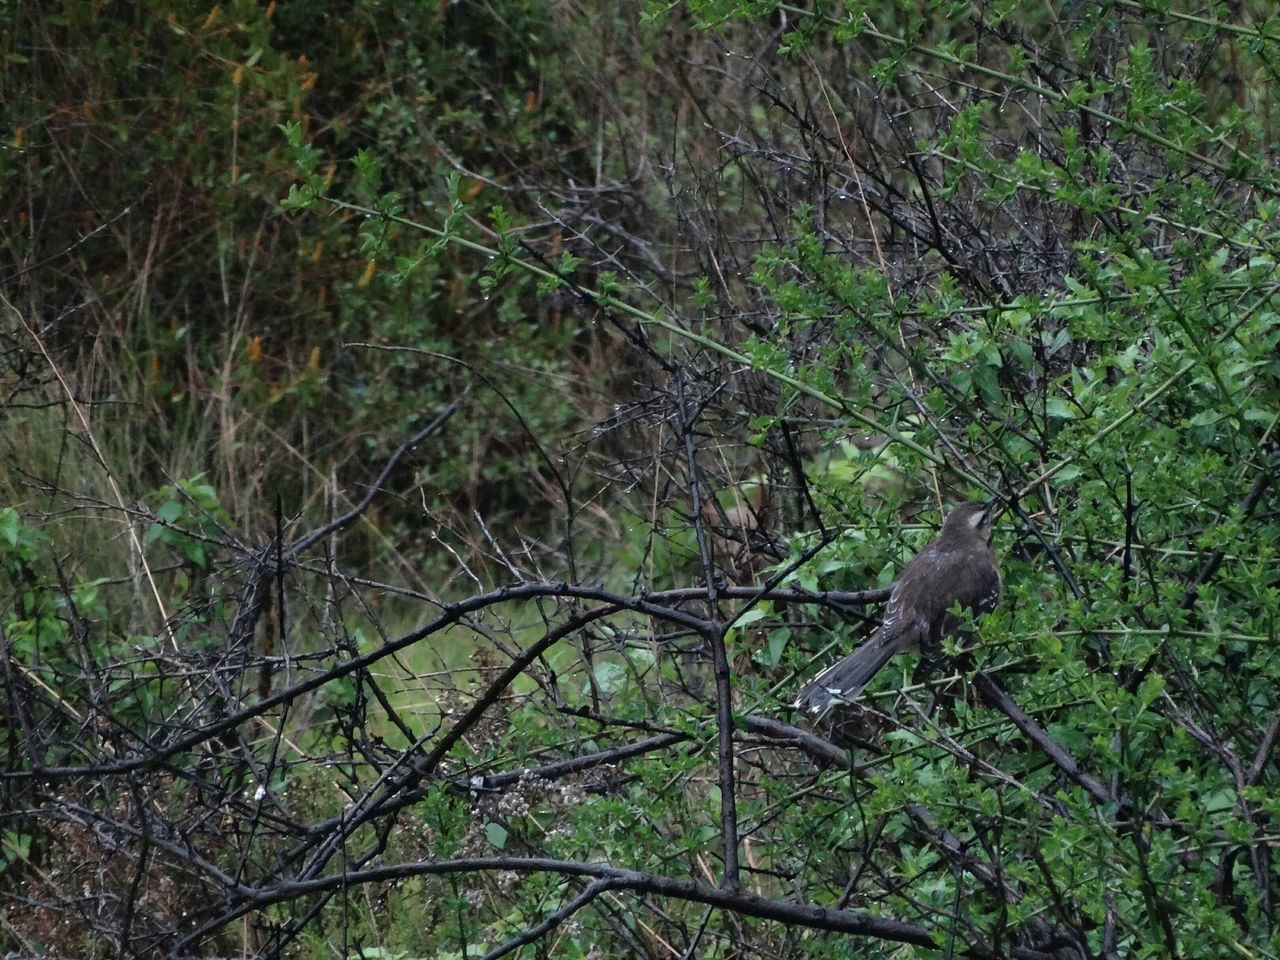 animals in the wild, tree, one animal, nature, animal themes, bird, animal wildlife, no people, day, branch, outdoors, growth, forest, perching